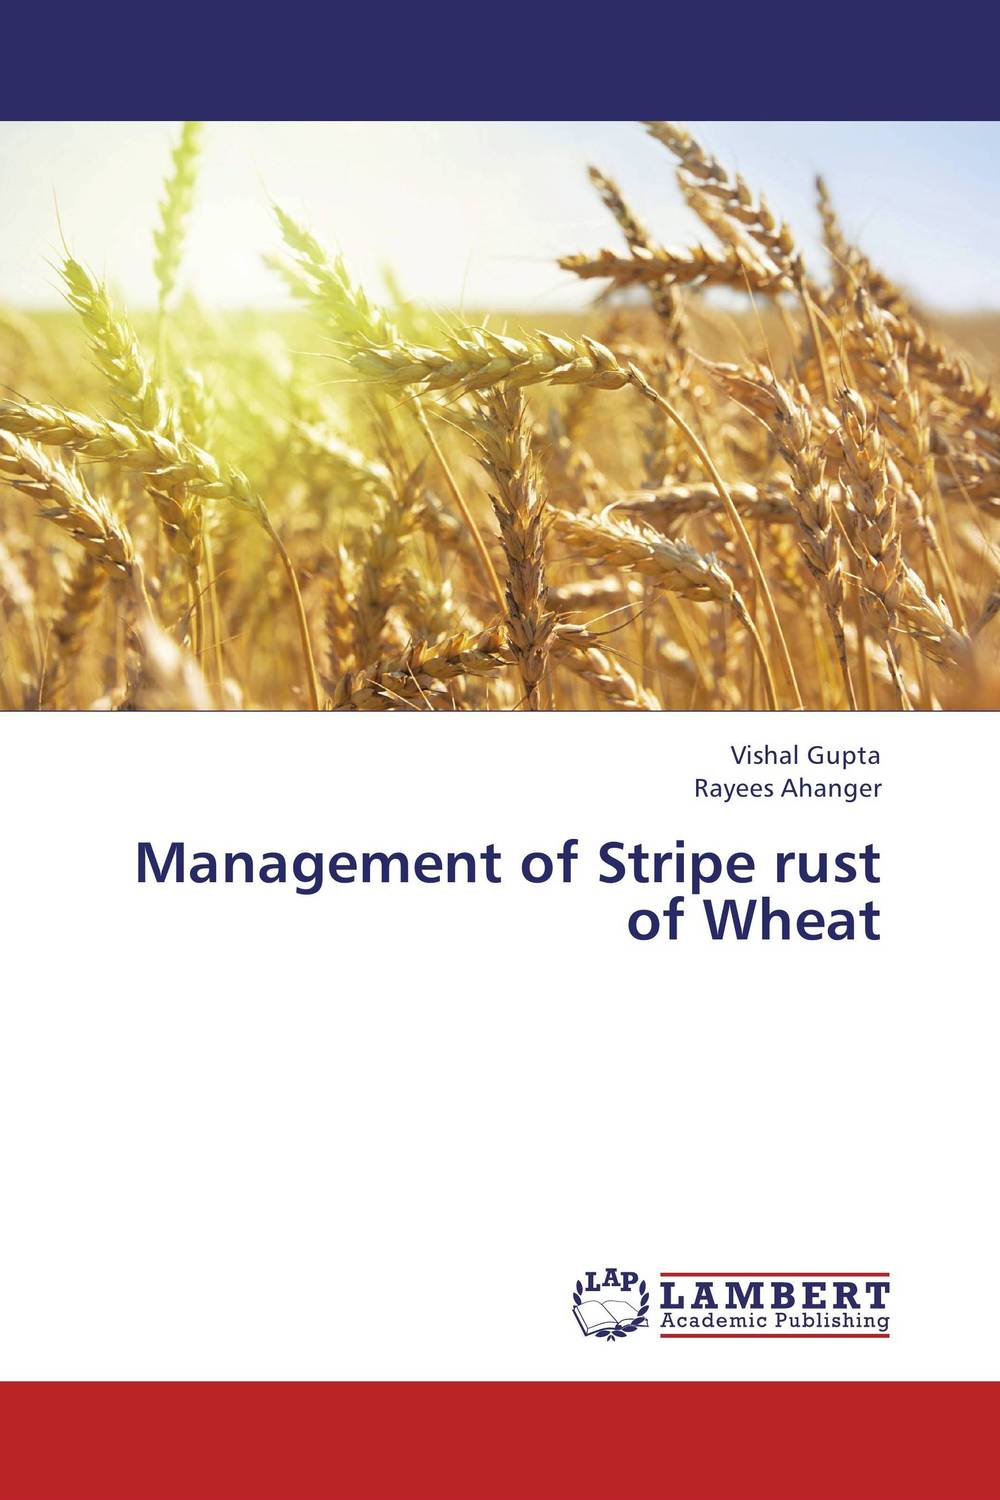 Management of Stripe rust of Wheat